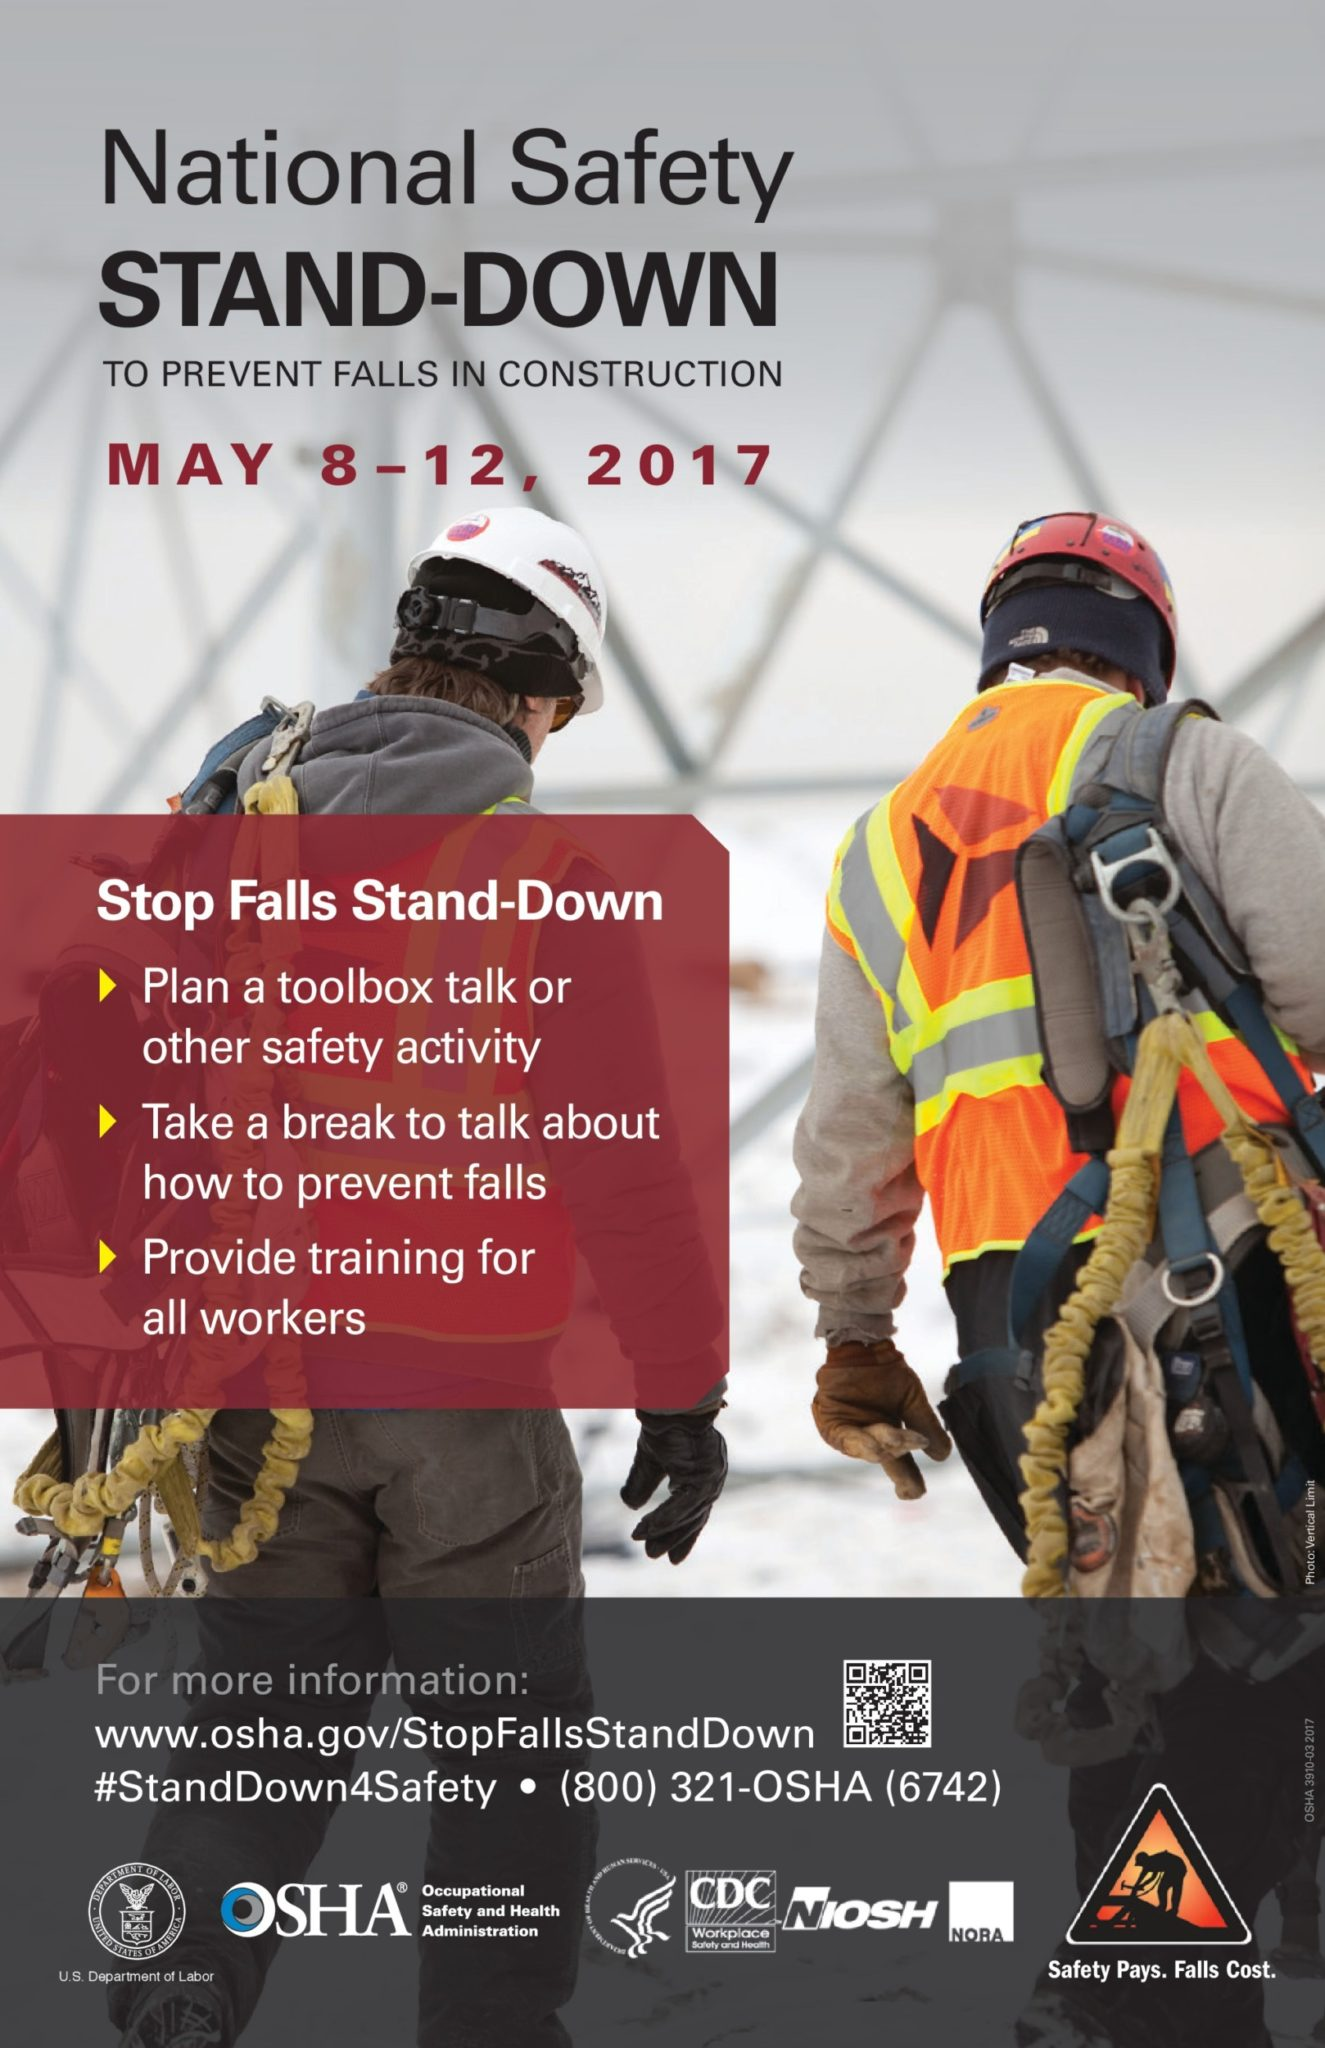 OSHA Safety Stand-Down May 8-12, 2017